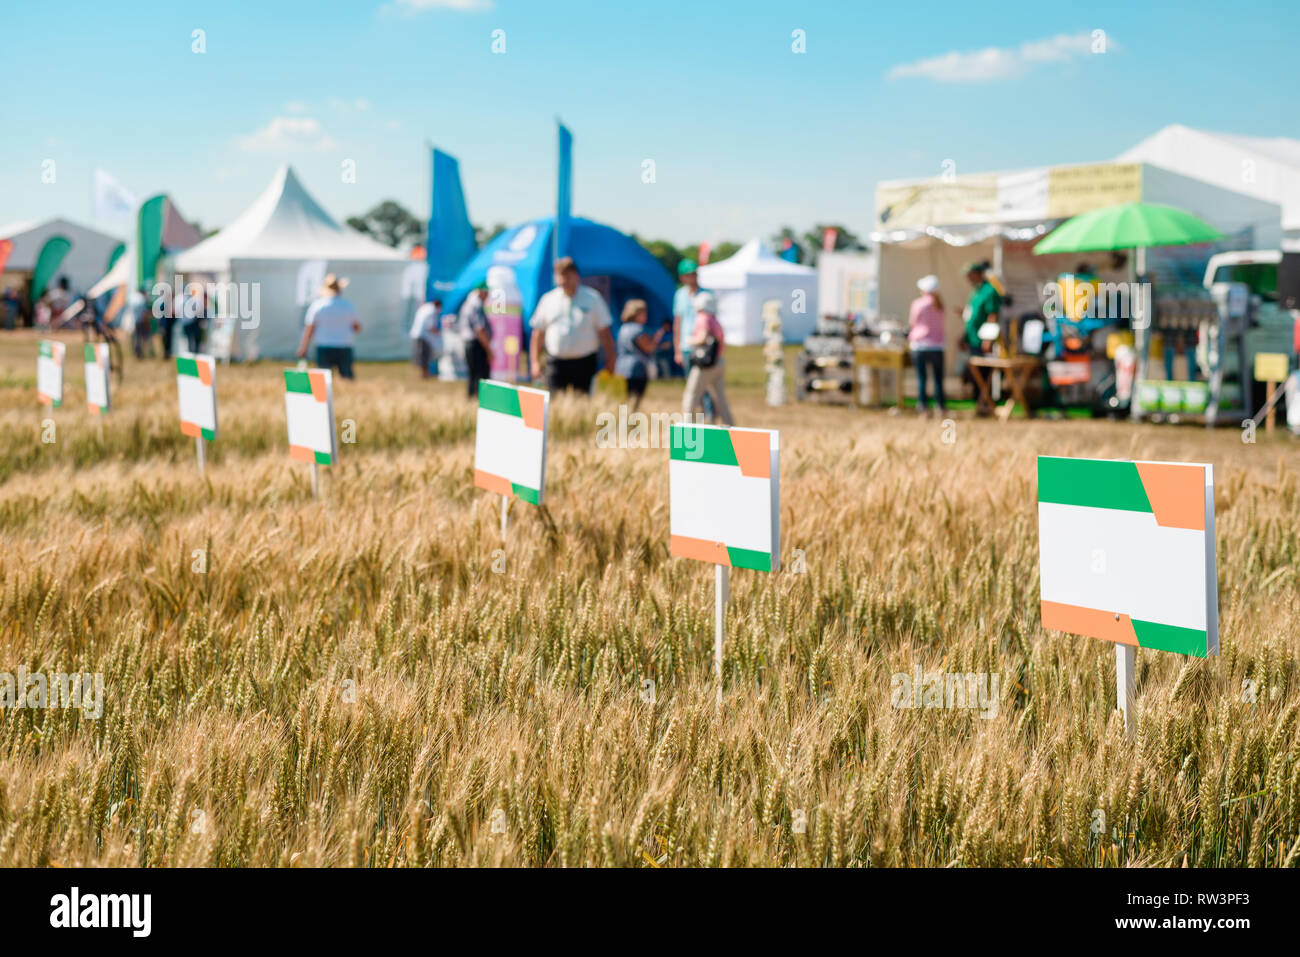 Wheat field with sort nameplates - Stock Image